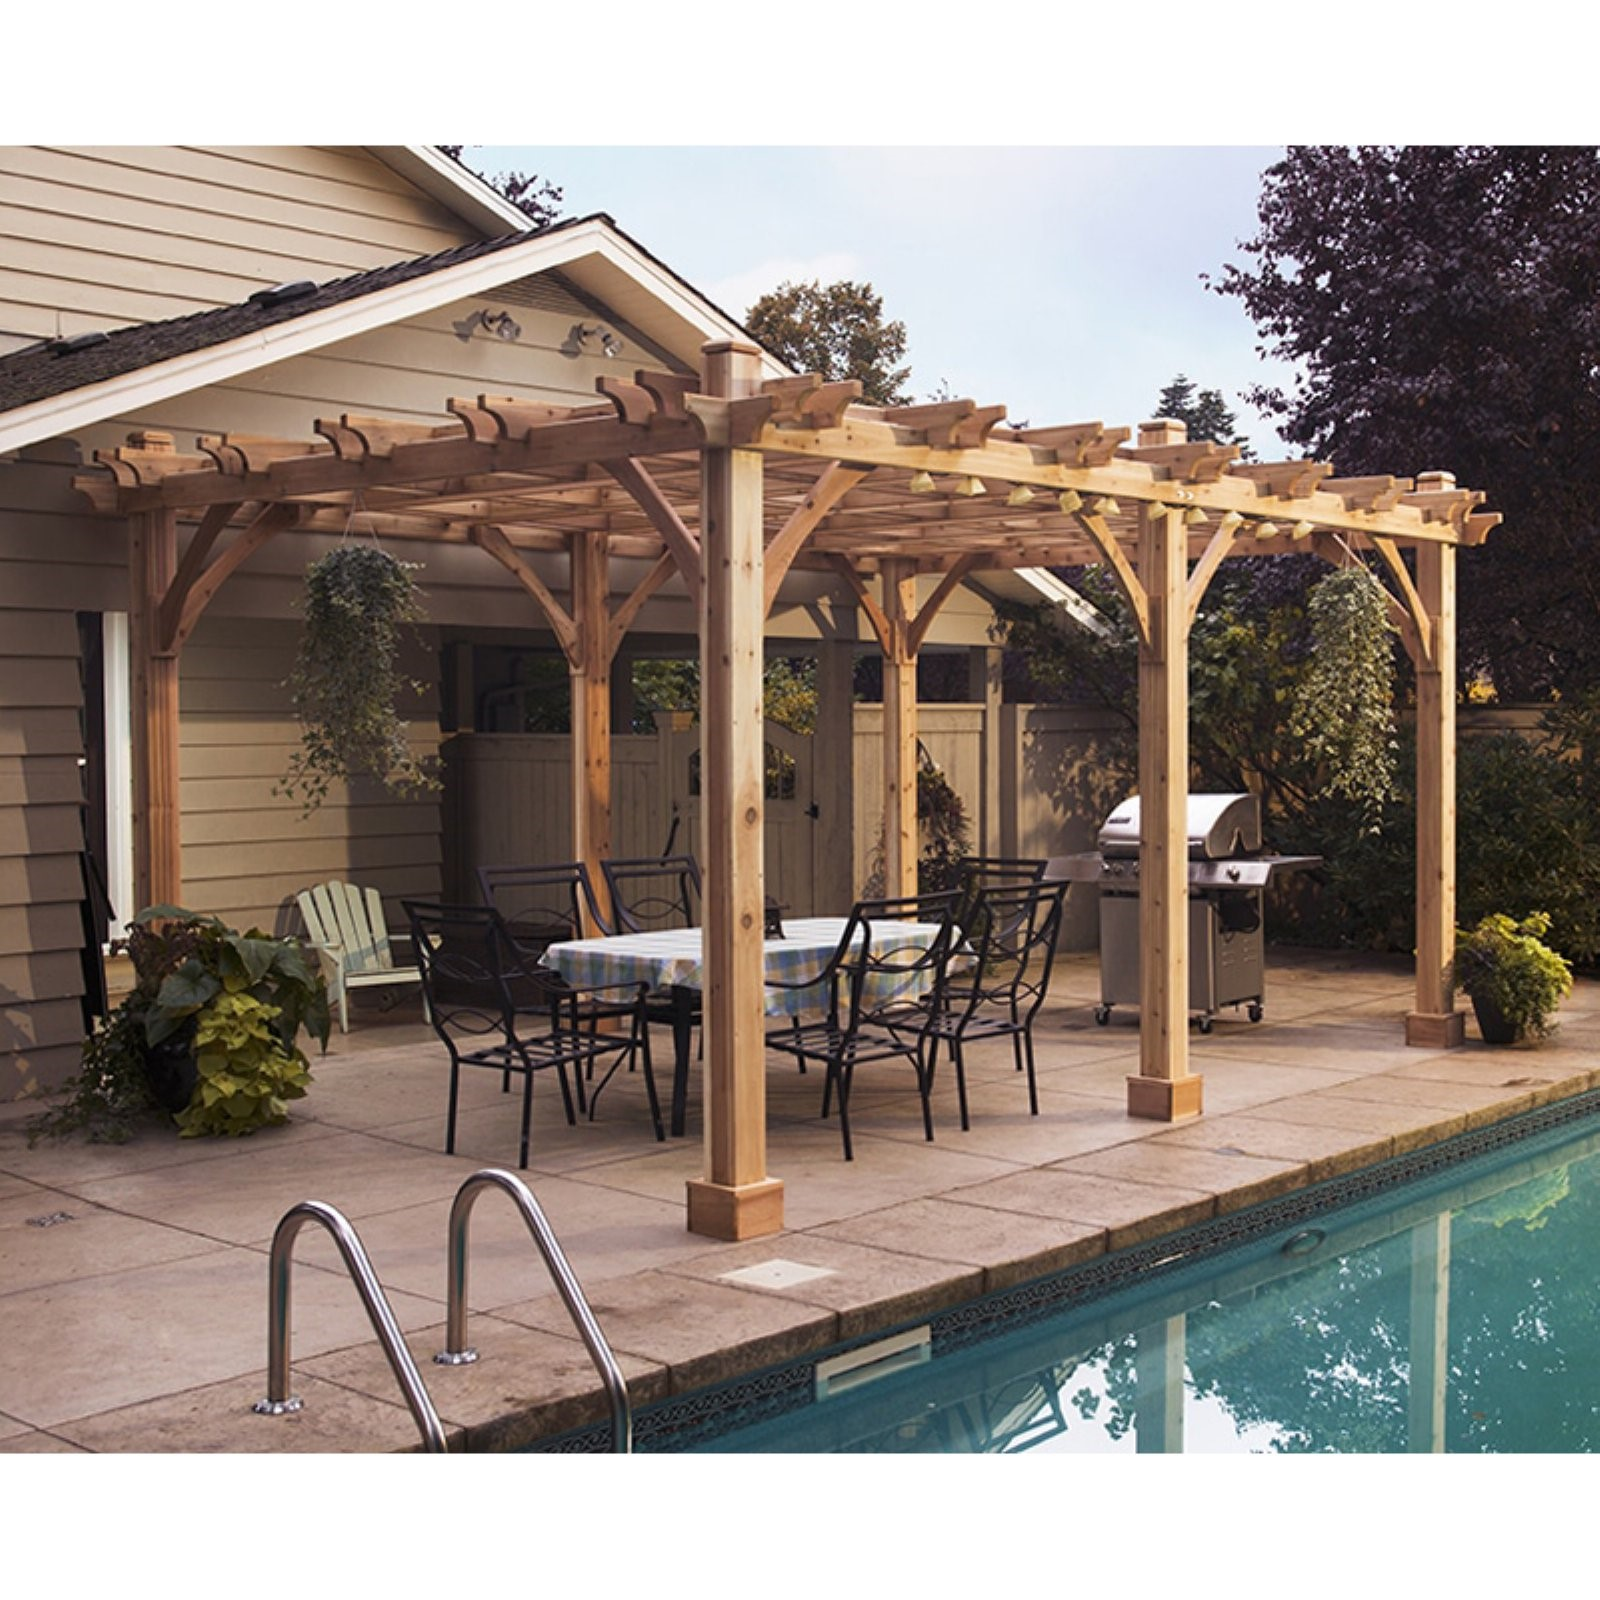 Outdoor Living Today Breeze 12 x 20 ft. Pergola by Outdoor Living Today